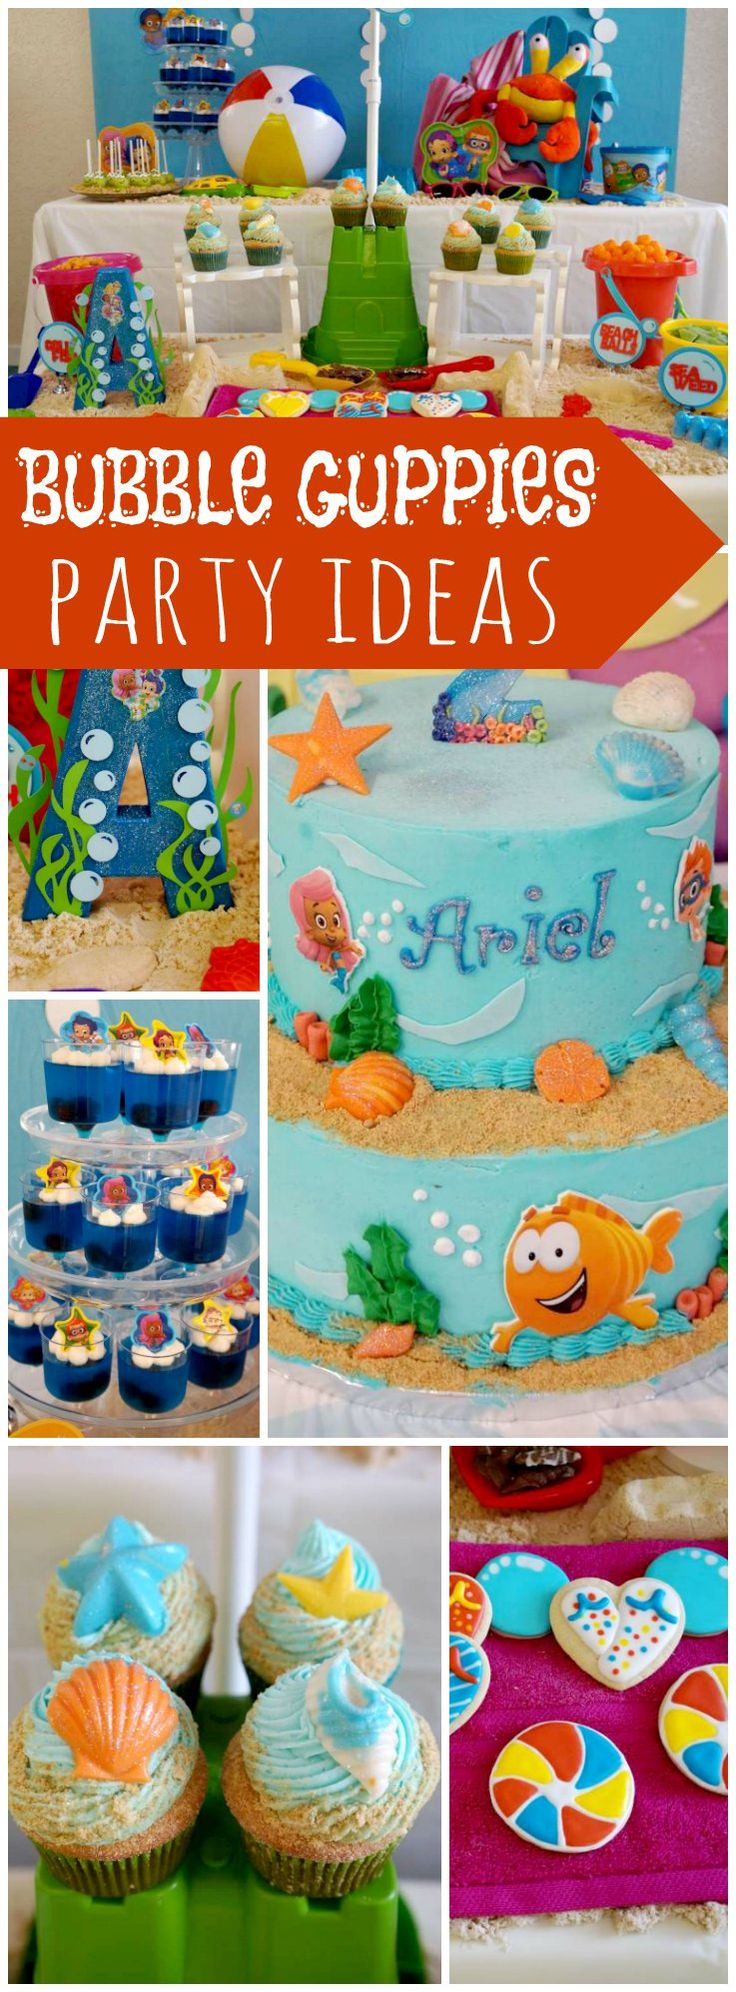 25 best ideas about bubble guppies birthday on pinterest bubble guppies party bubble guppies - Bubble guppie birthday ideas ...